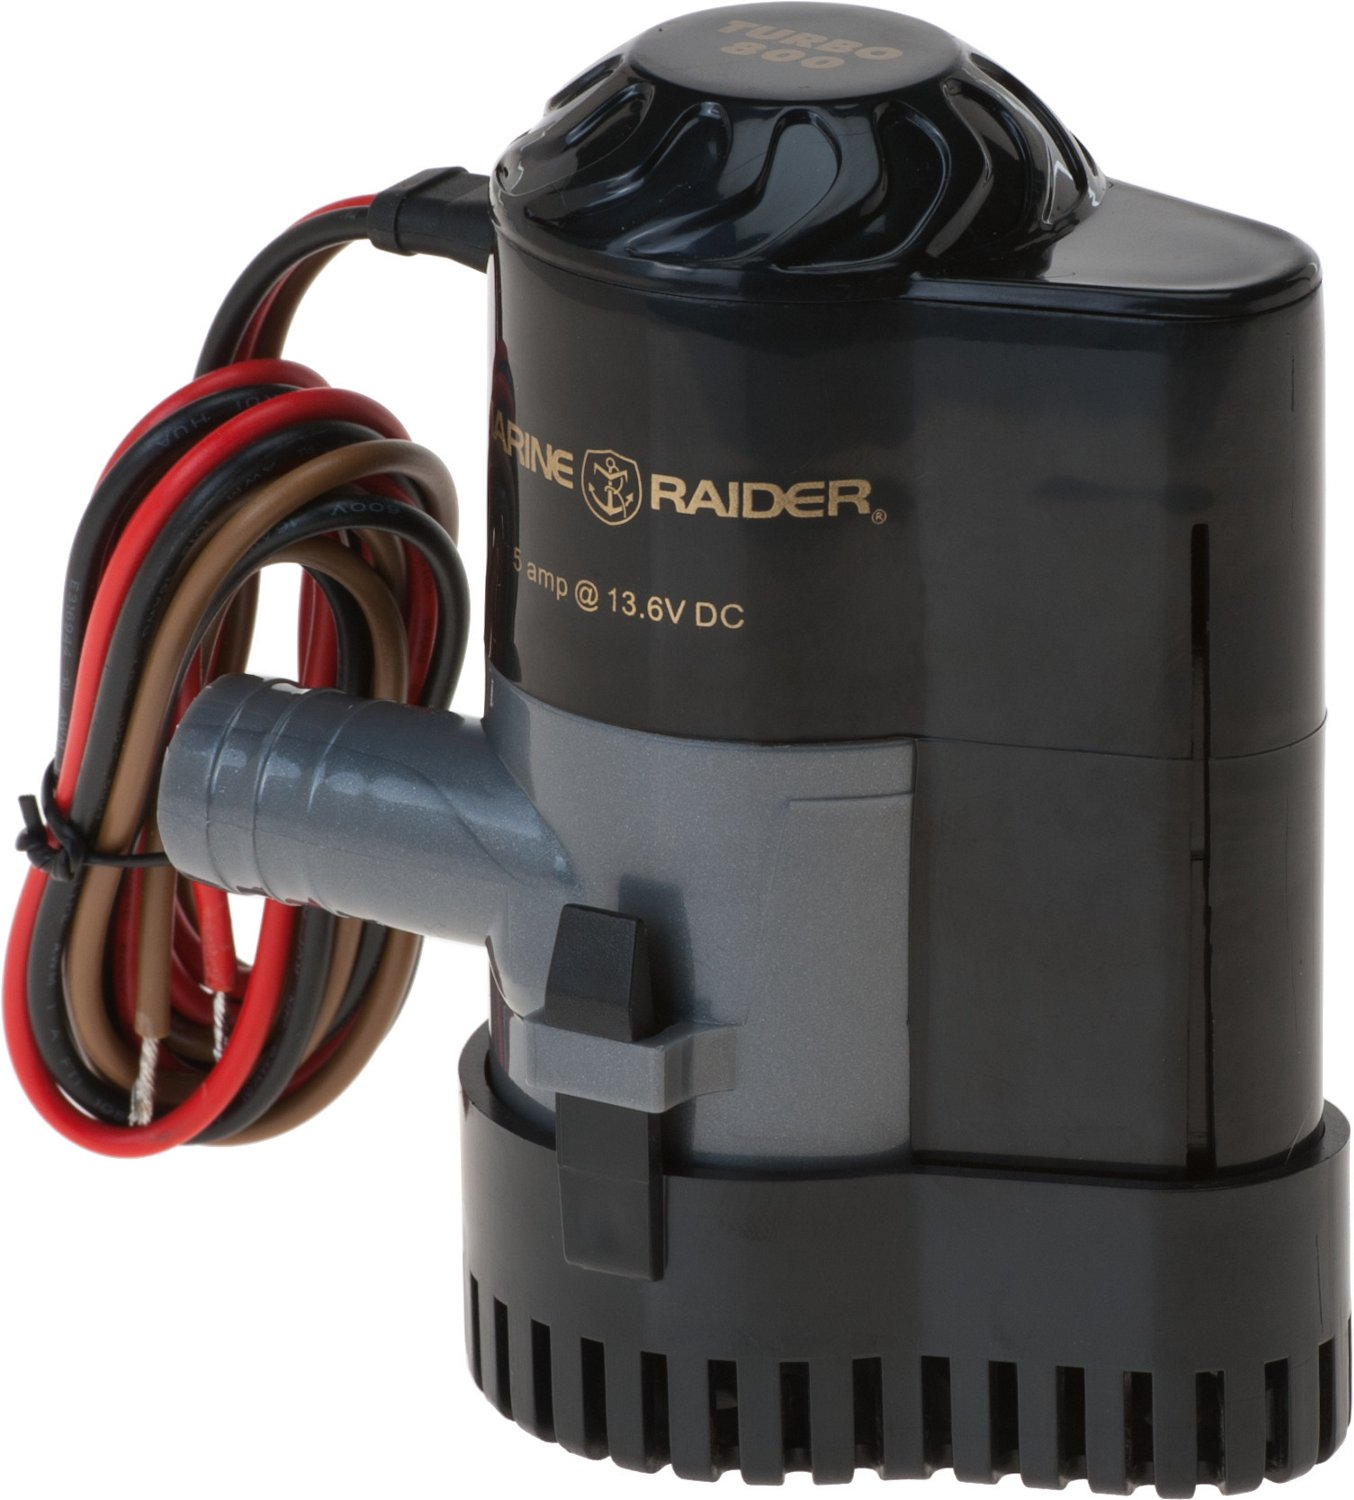 marine raider 800 gph automatic bilge pump academy Furniture Wiring Diagrams hover click to enlarge